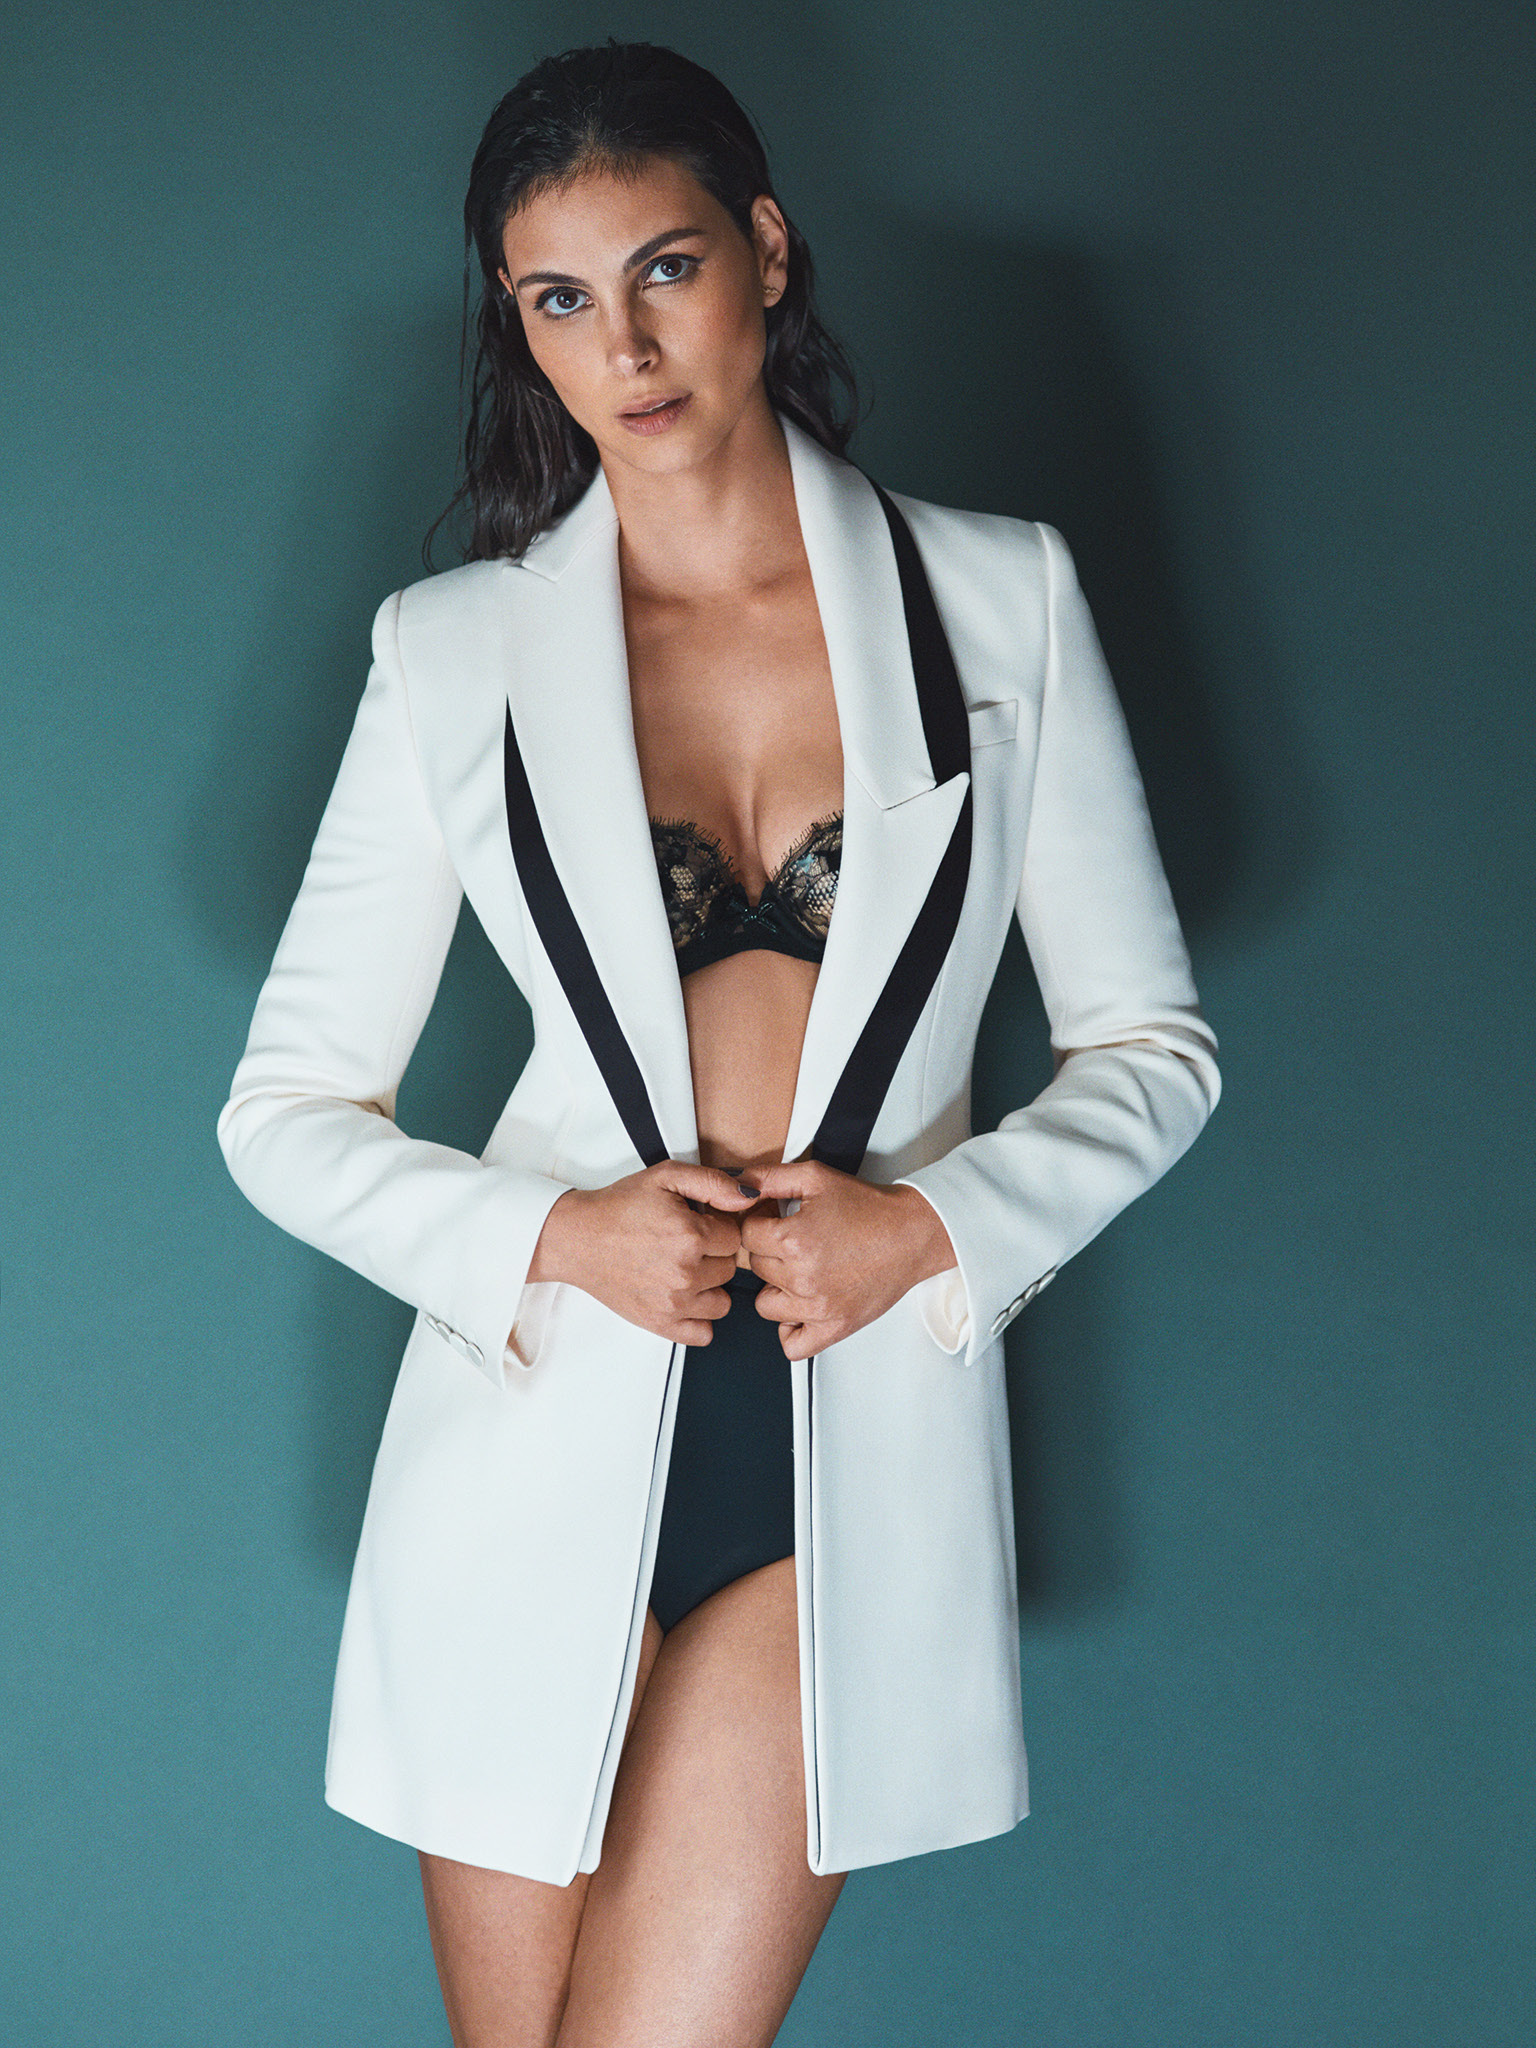 Morena Baccarin pussy